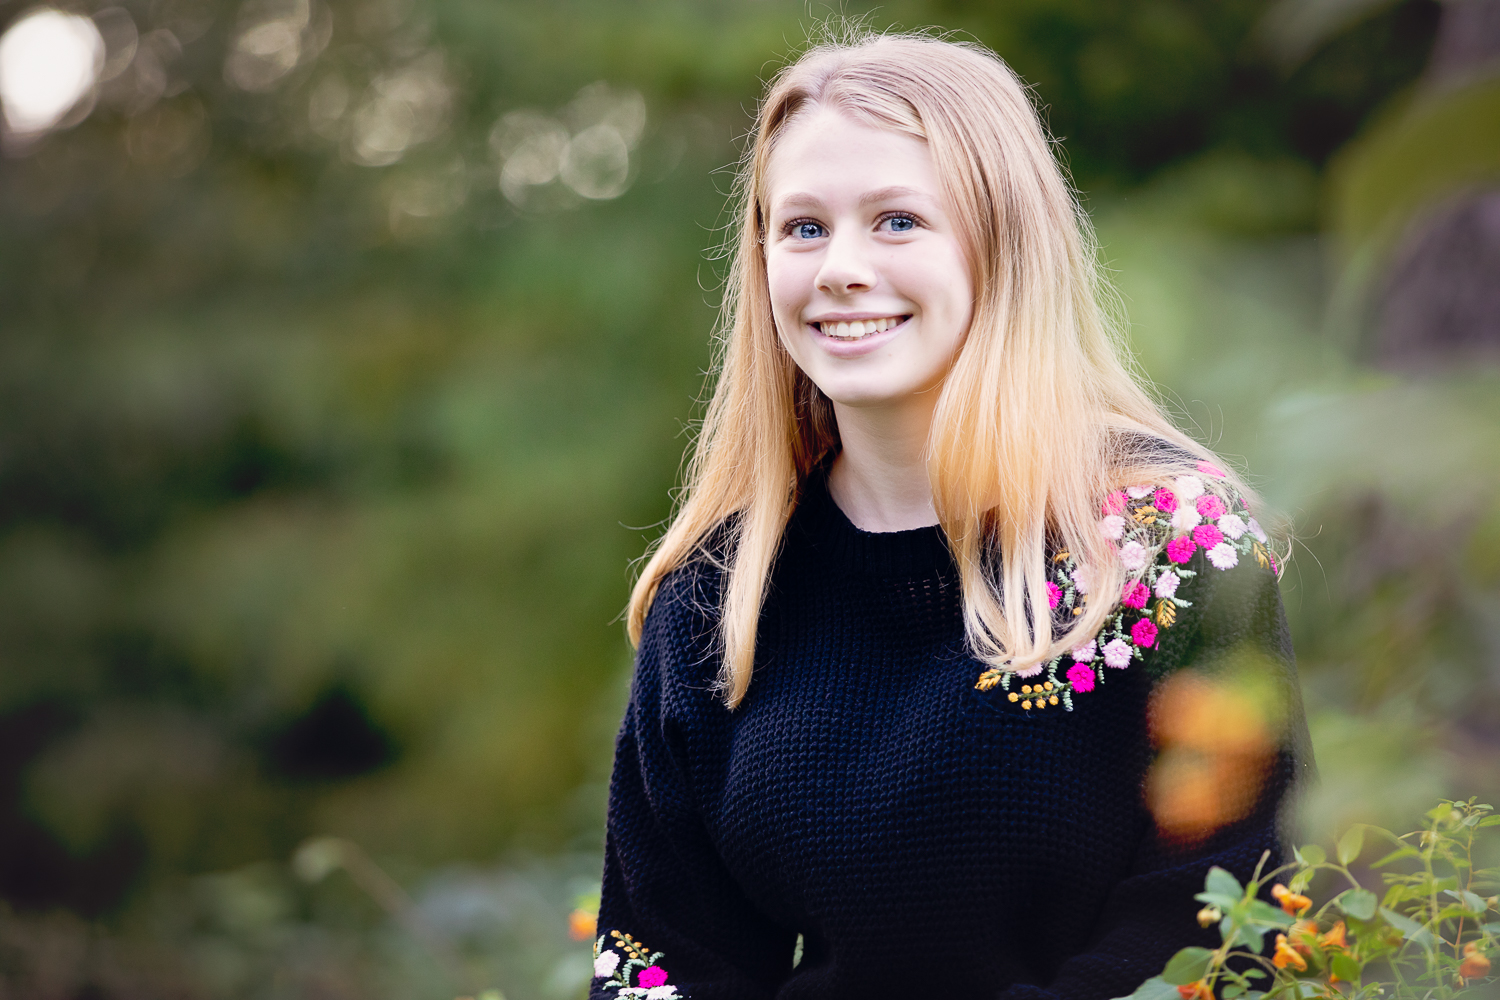 Outdoor photo of a teenage girl in a black sweater